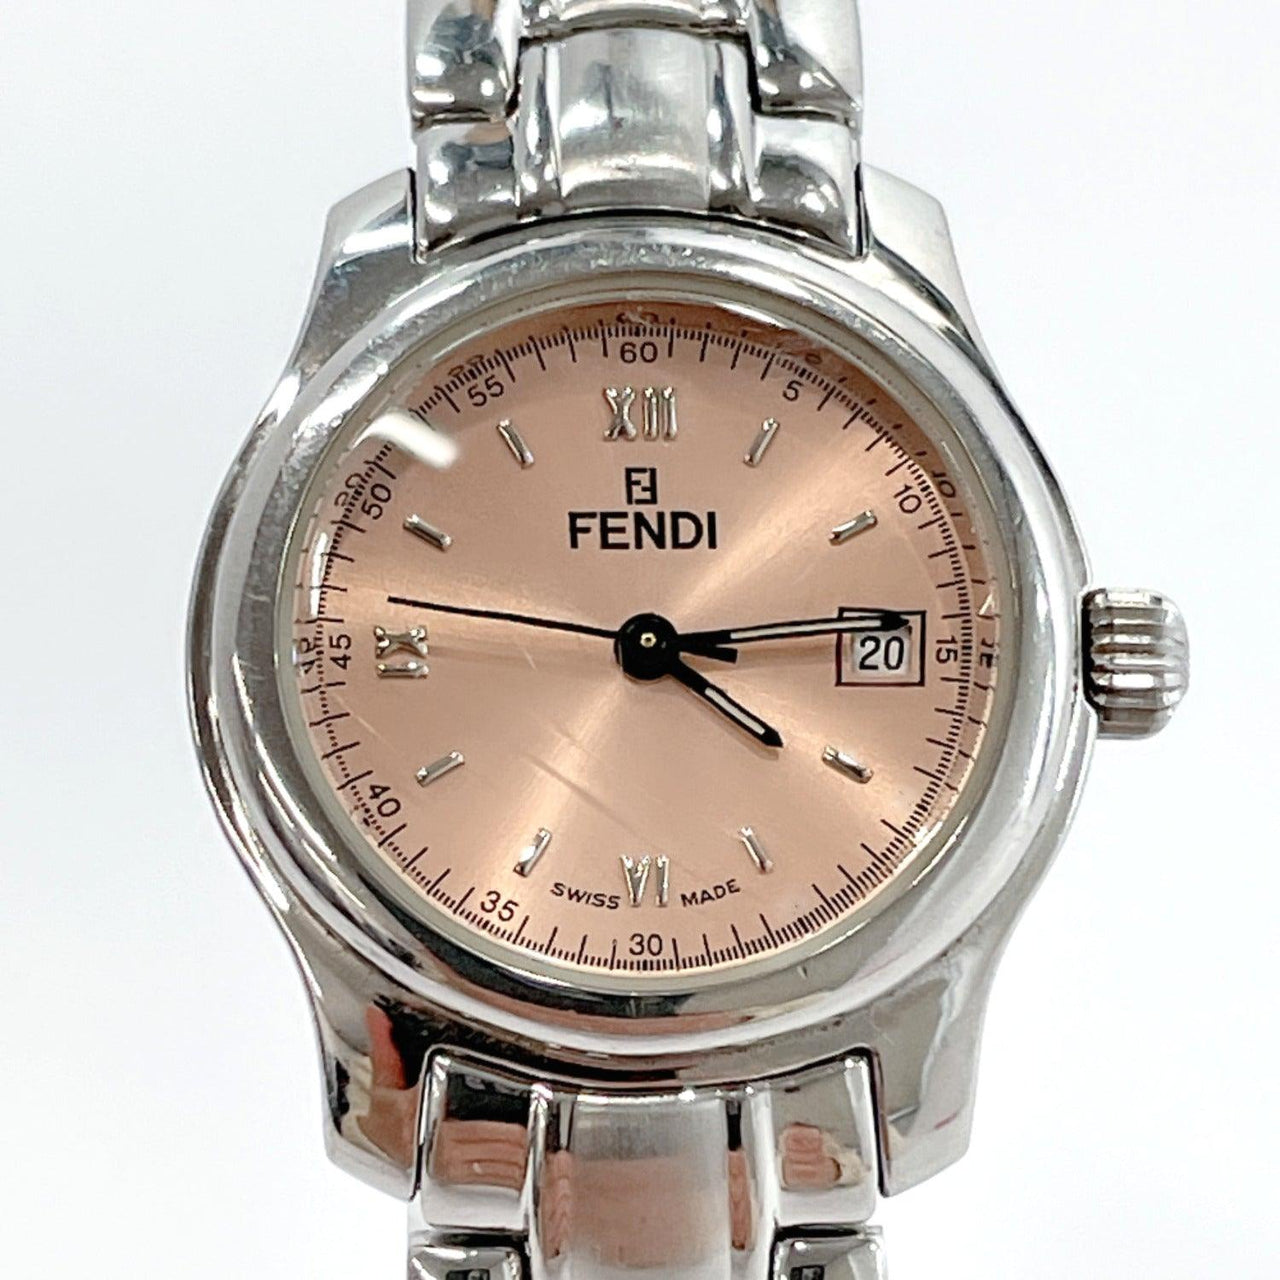 FENDI Watches 210L quartz Stainless Steel Silver Women Used